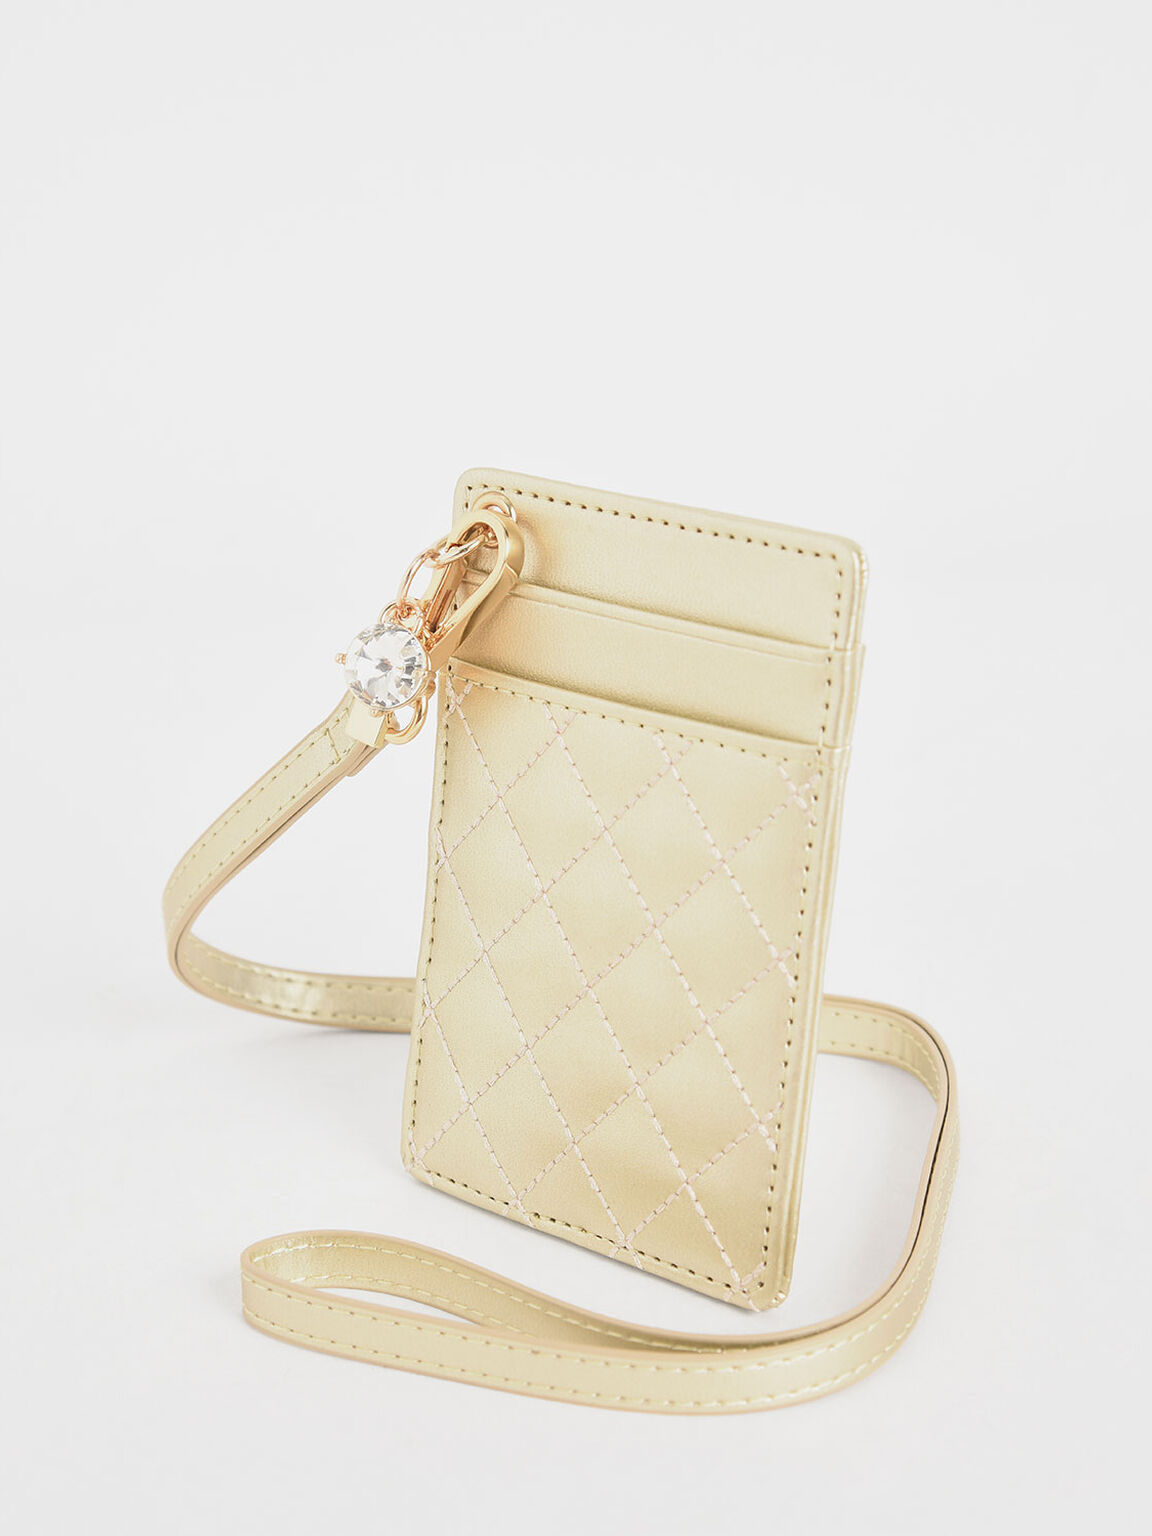 Quilted Card Holder, Gold, hi-res